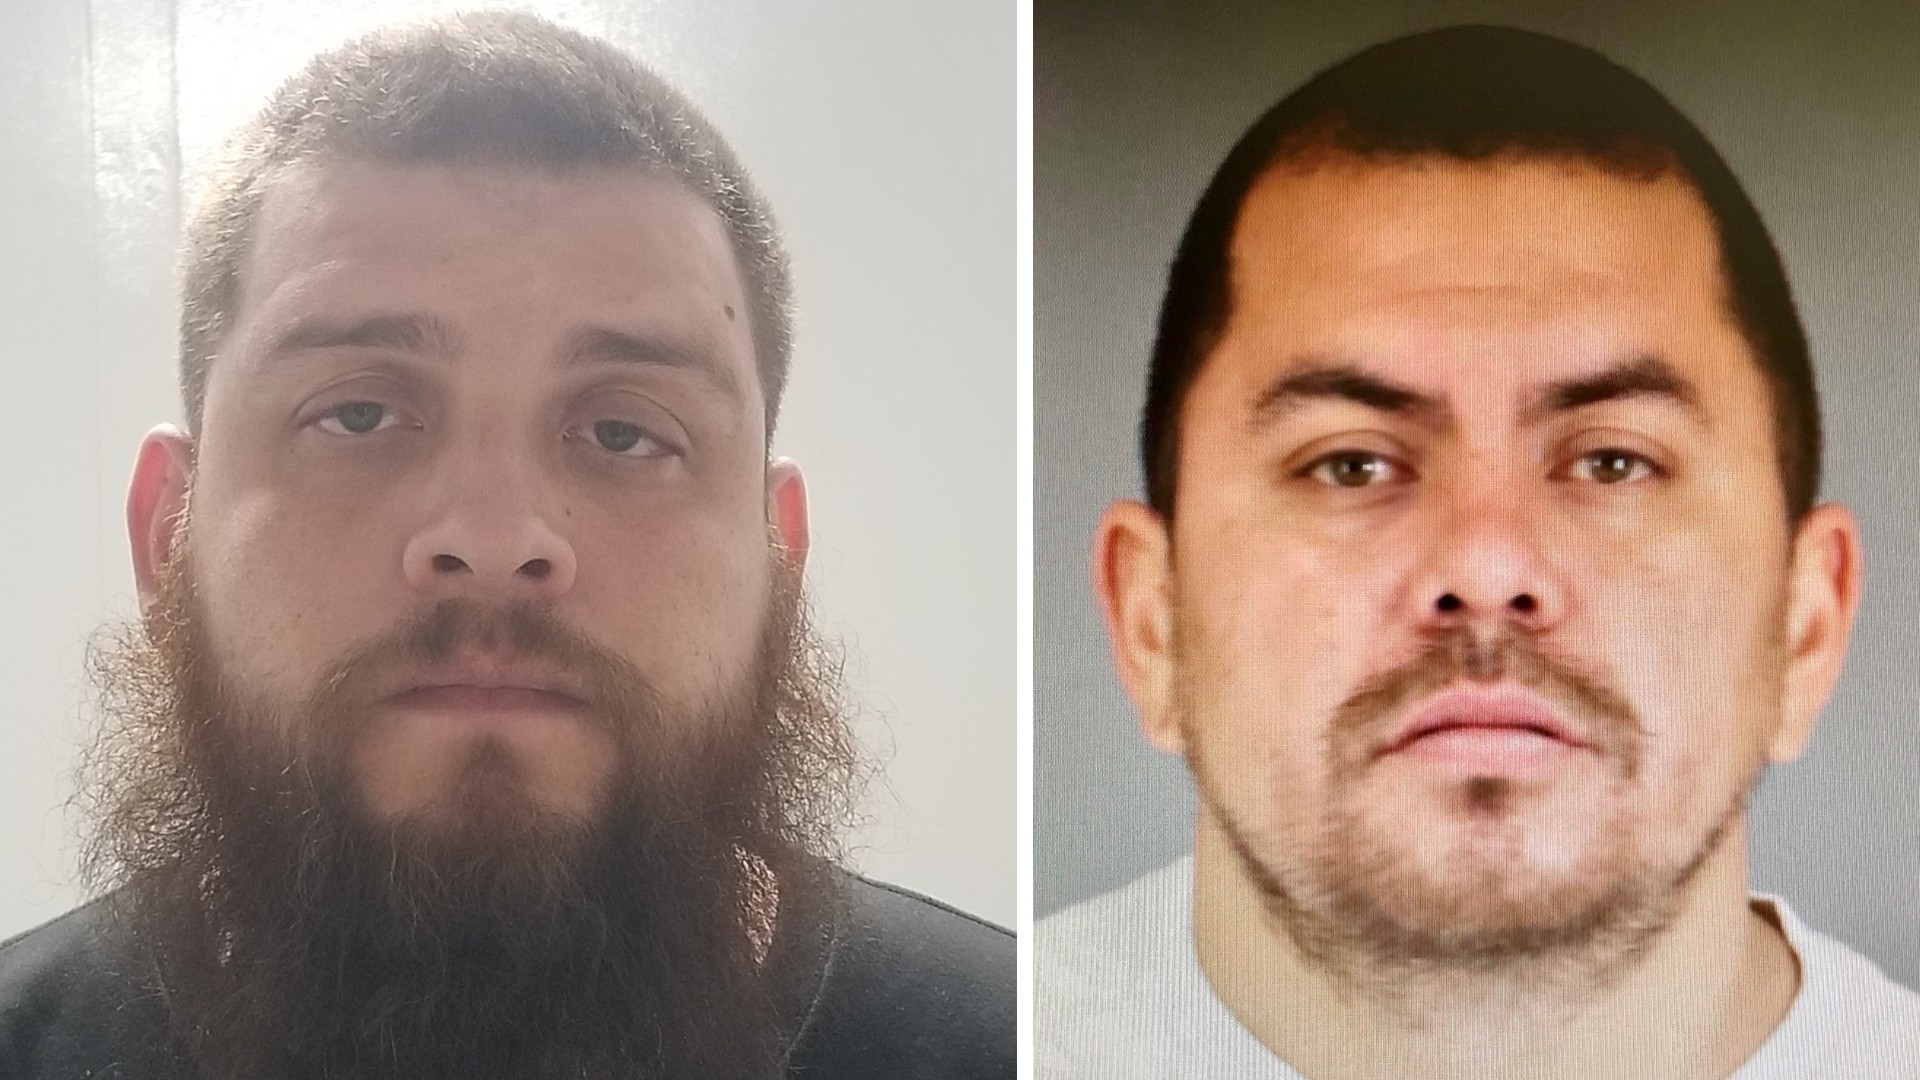 Ernesto Gonzales, left, and Angel Melesio Sanchez of Hemet, right, are seen in an undated photos released by Hemet police on Jan. 5, 2020.